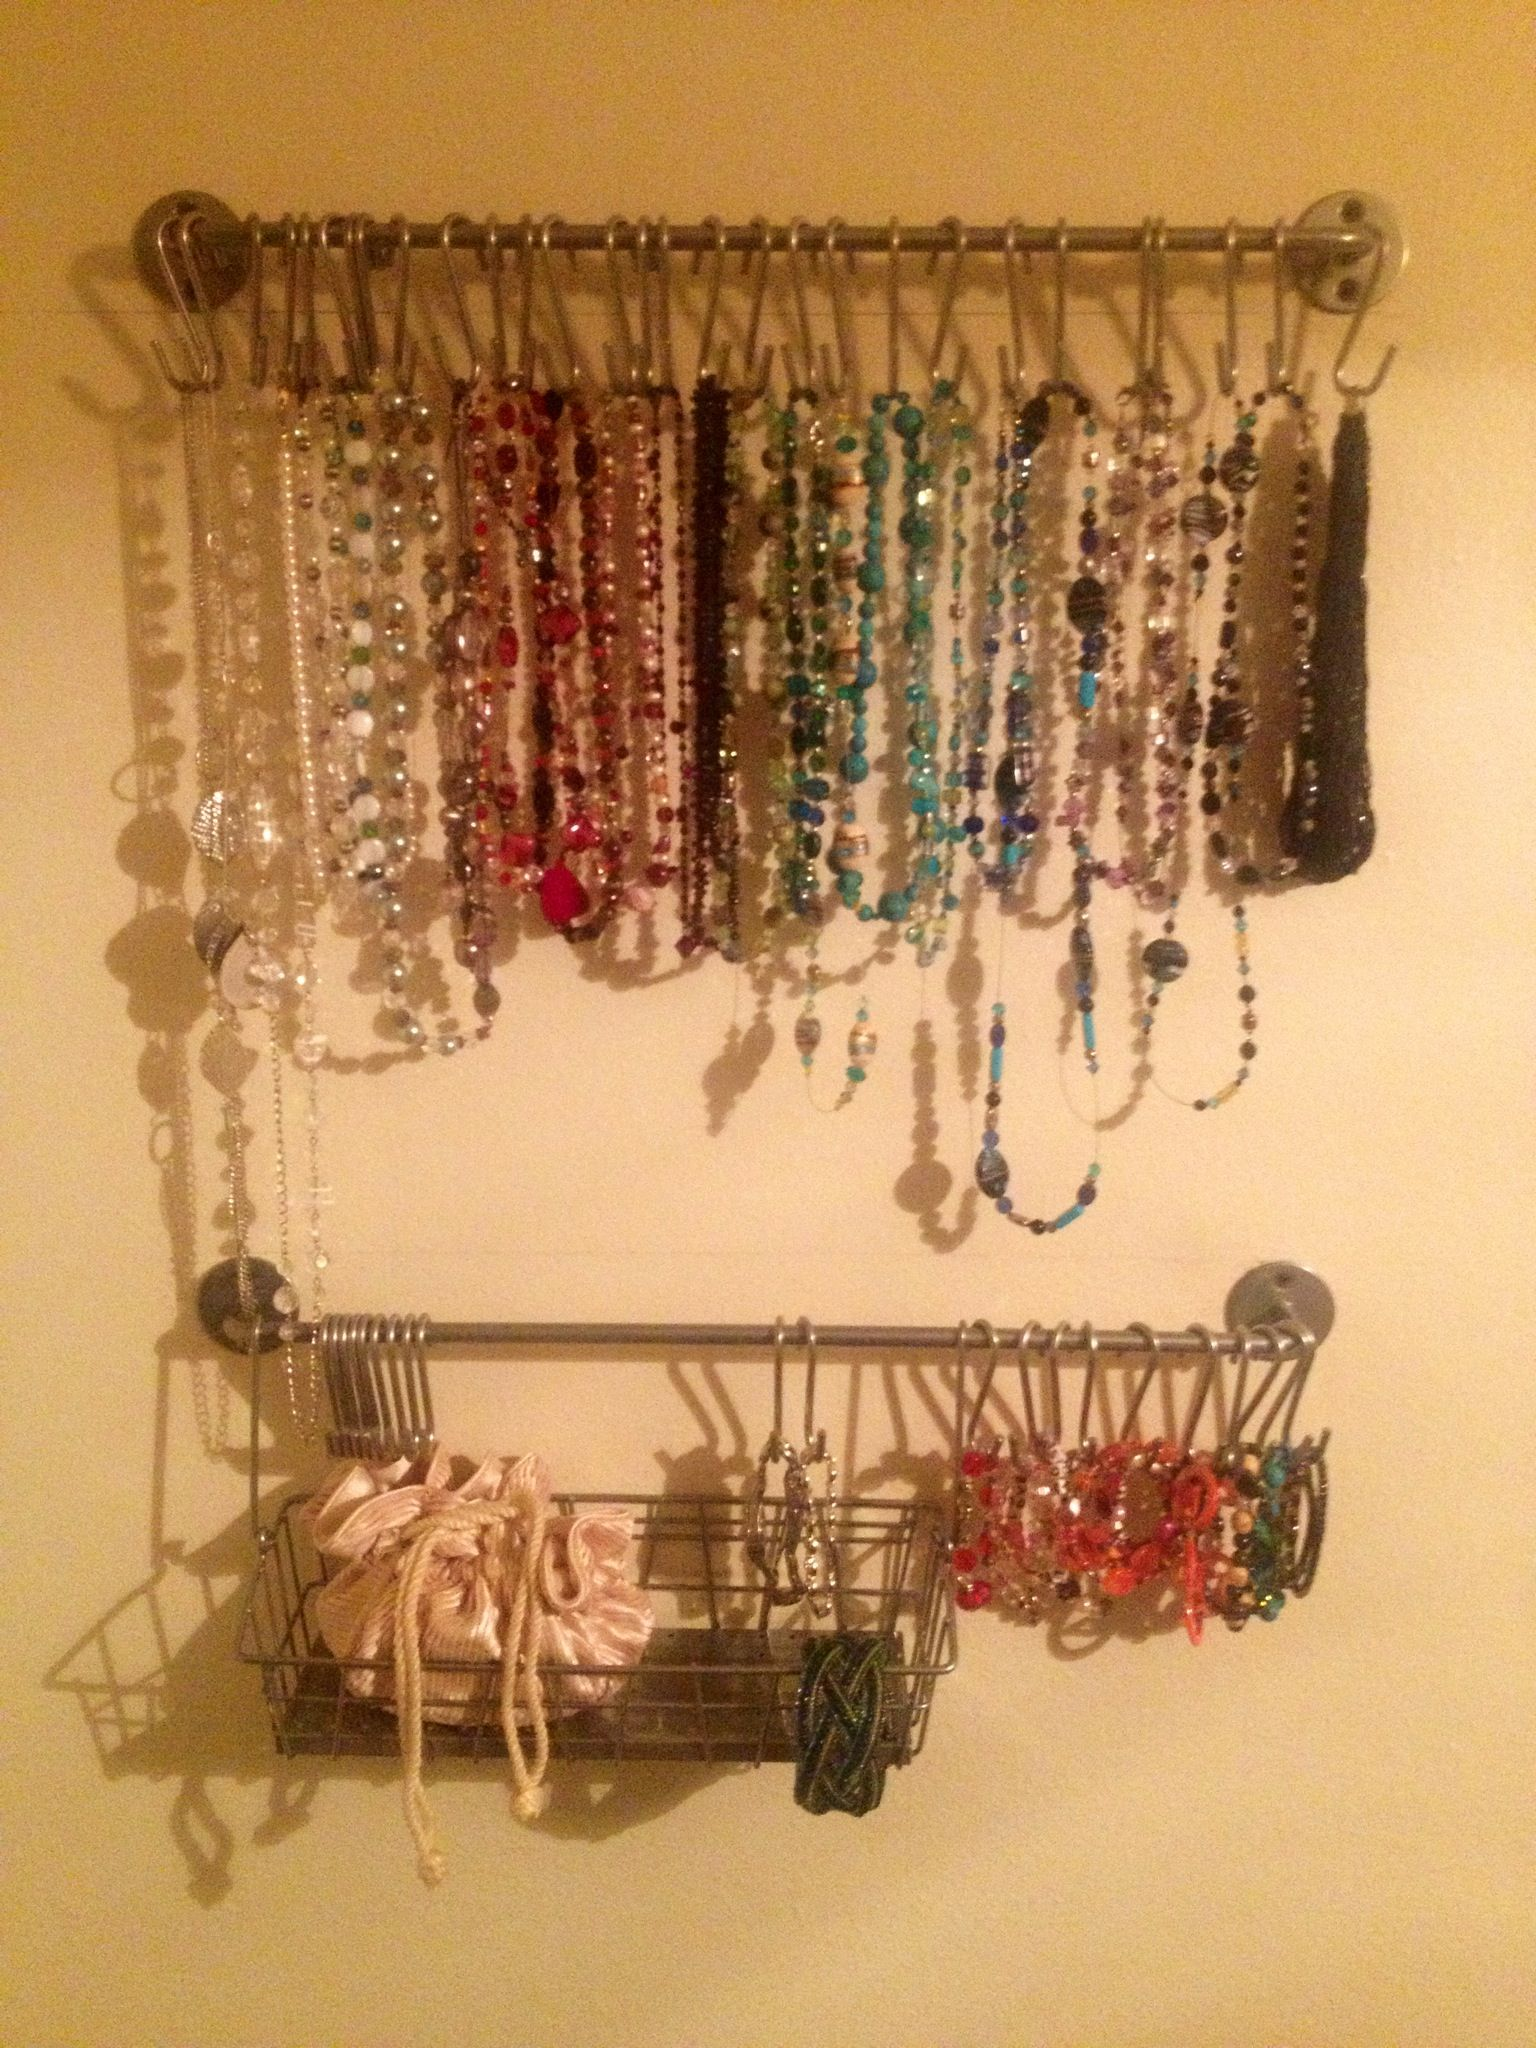 Ikea Jewelry Hanger :) | Things for My Wall | Pinterest | Hanger ...